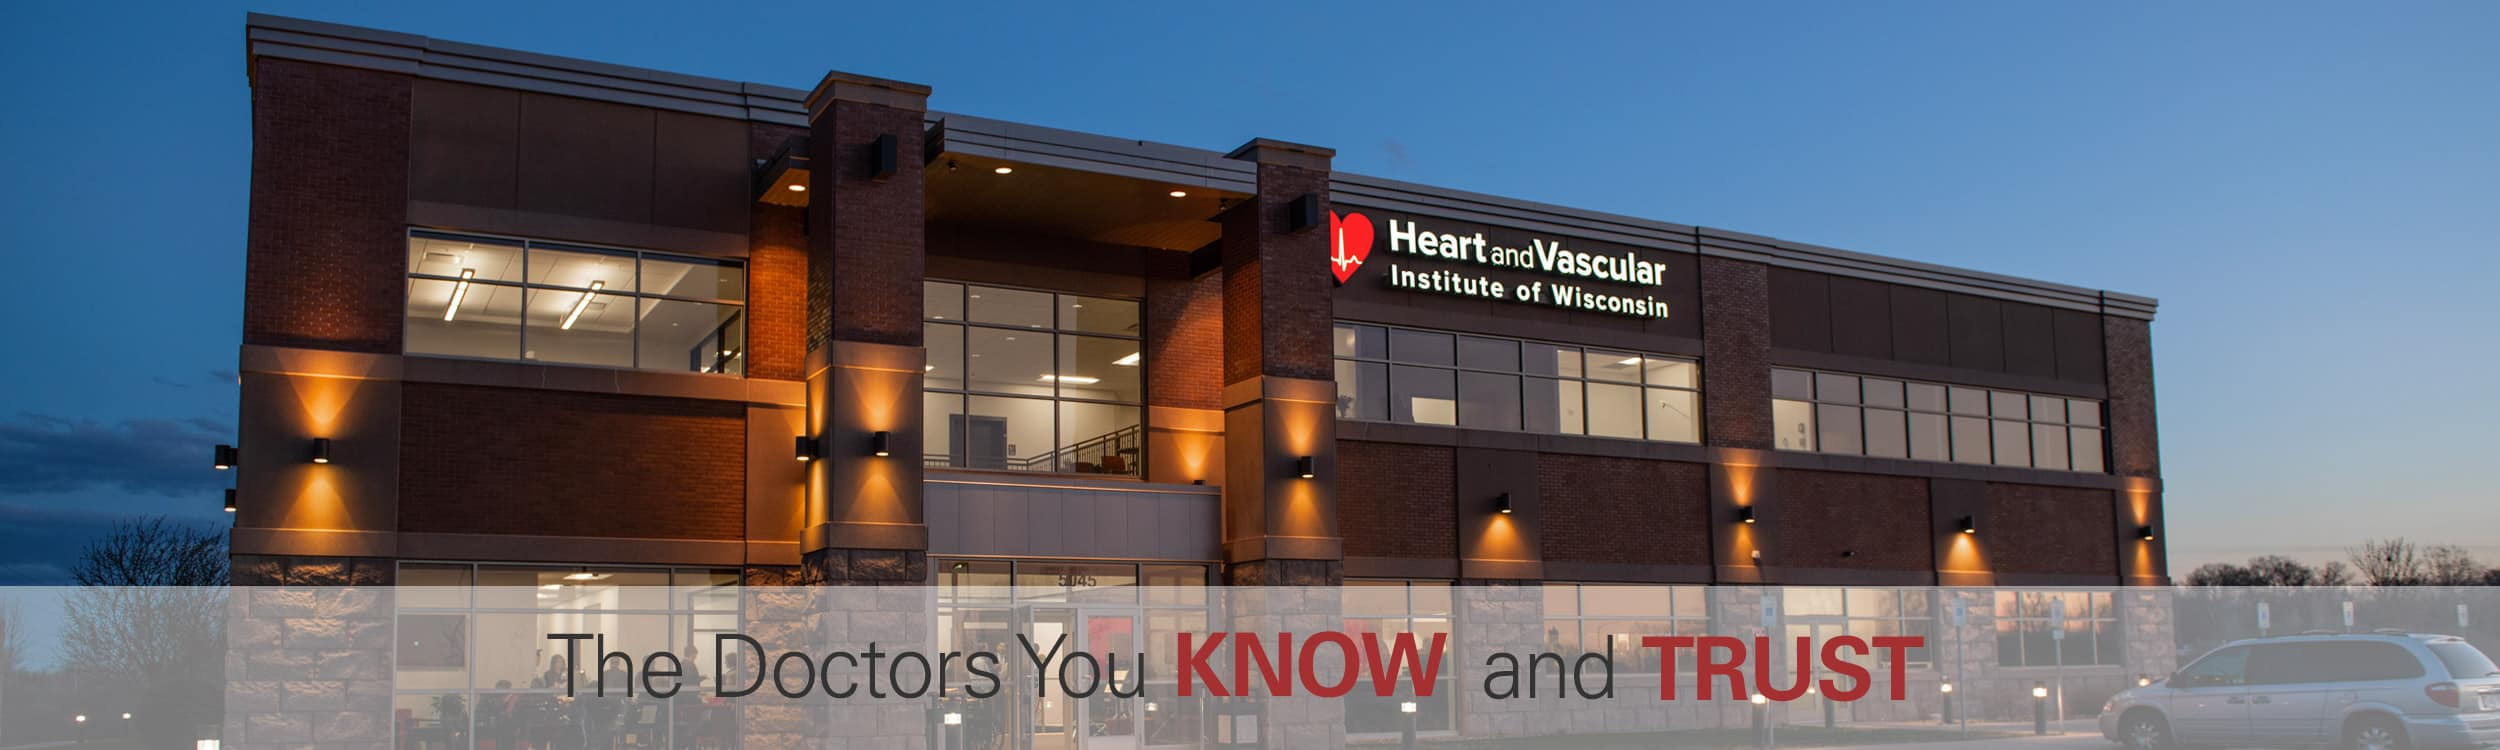 Heart and Vascular Institute of Wisconsin in Appleton, Wisconsin